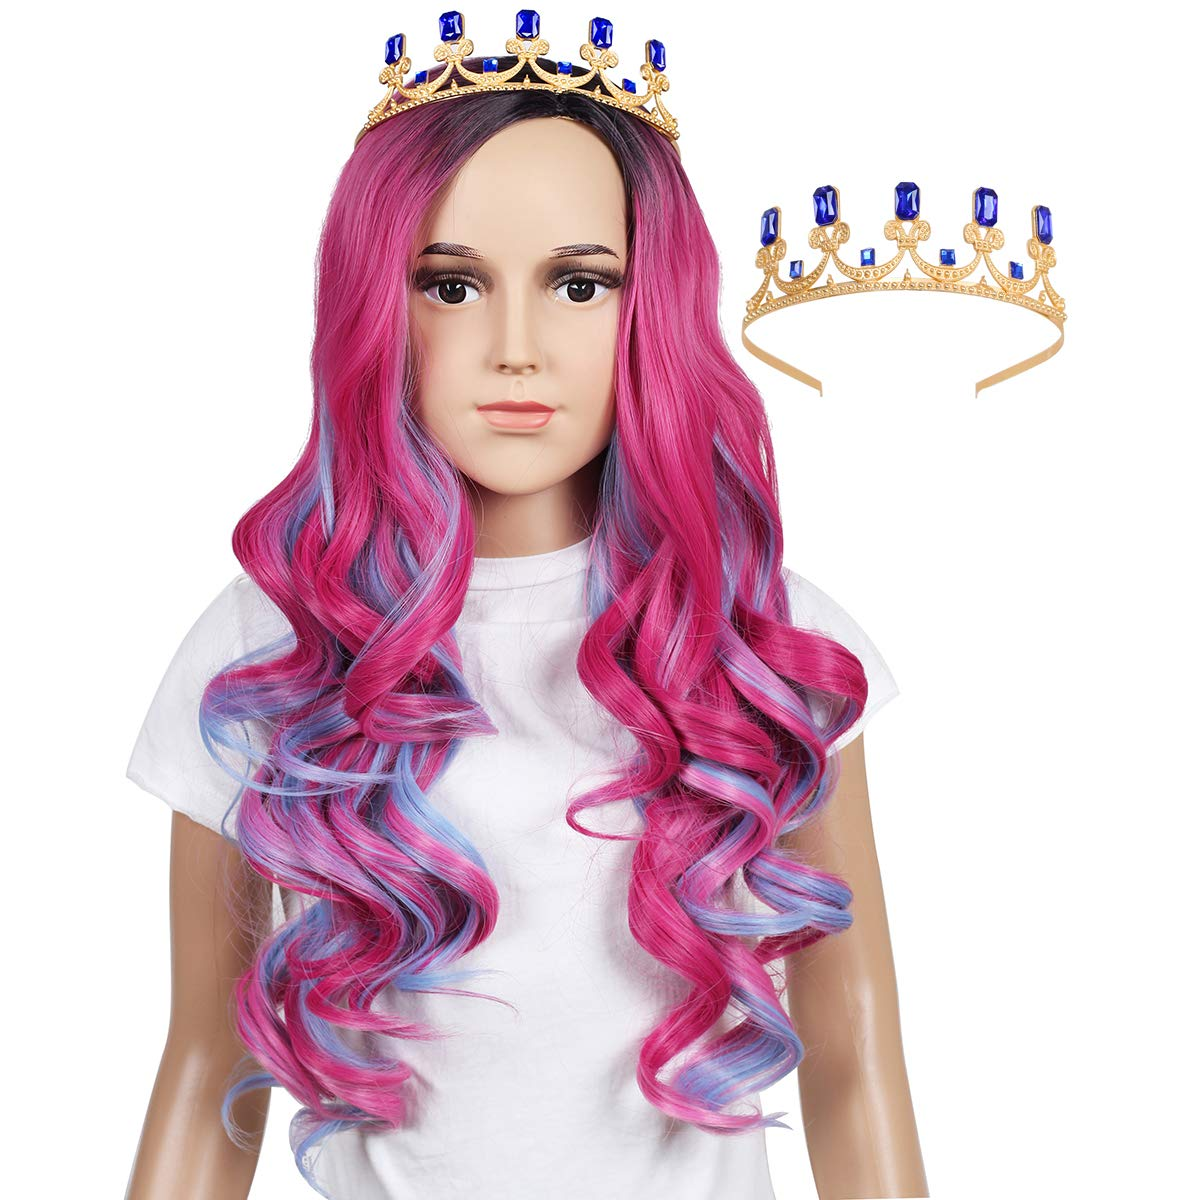 ColorGround Long Wavy Pink and Light Blue Mixed Cosplay Wig with Crown (Kids Size) by ColorGround